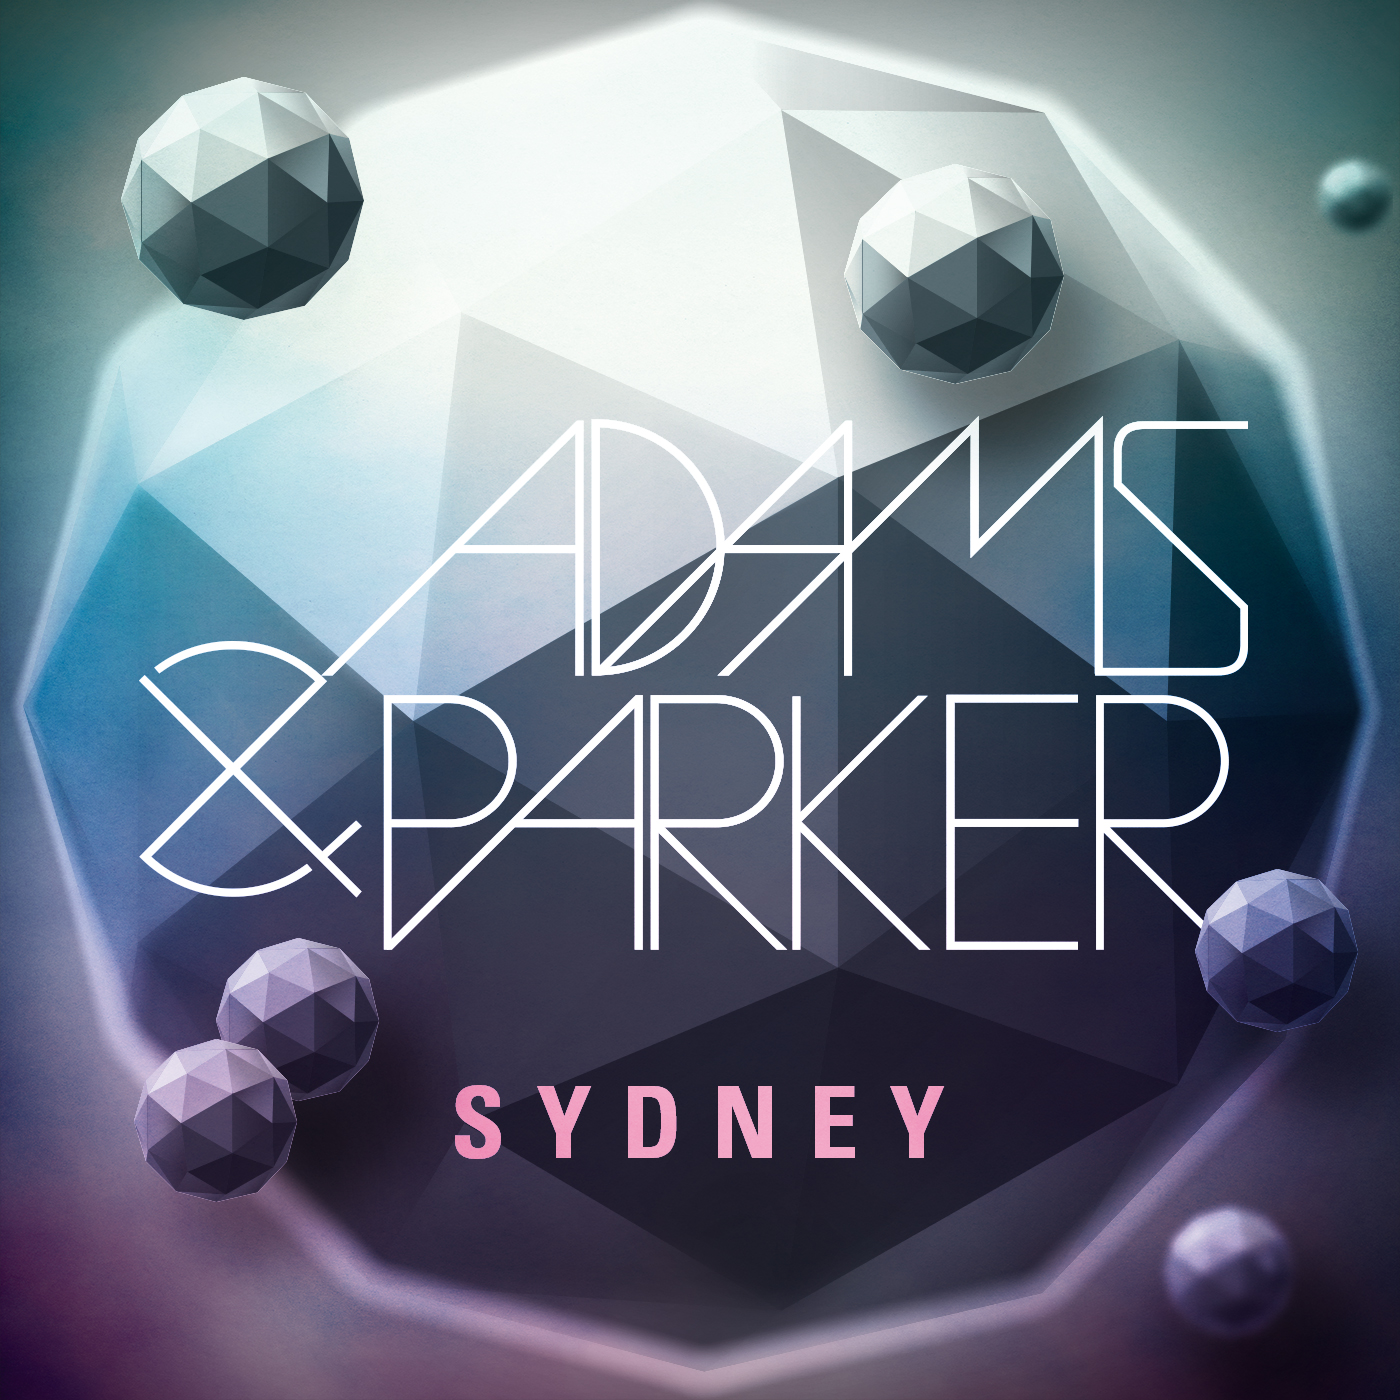 ADAMS & PARKER - Sydney (Kontor/Kontor New Media)